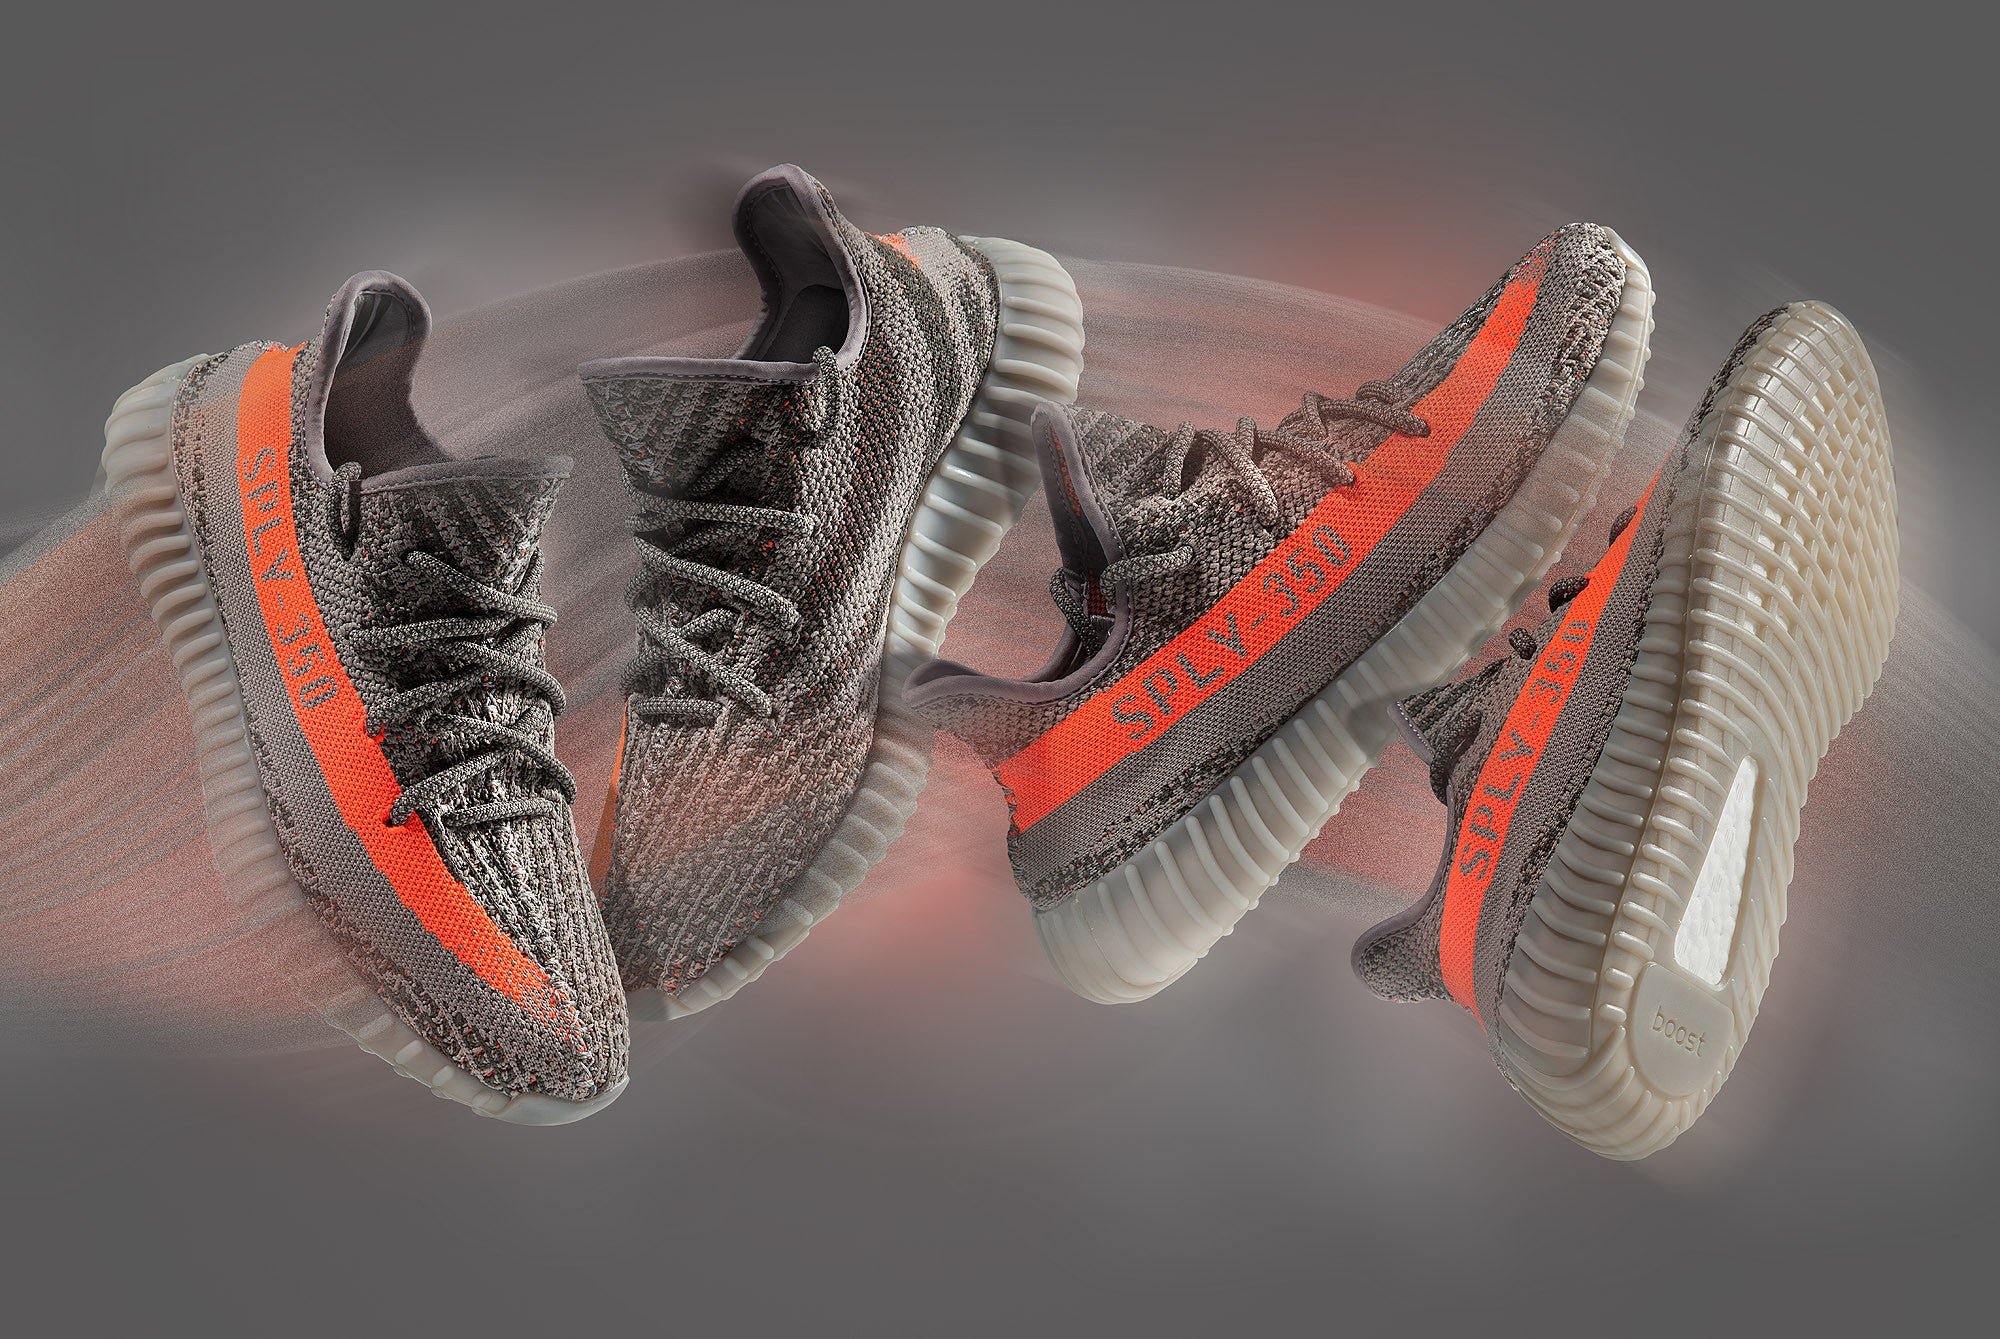 The YEEZY BOOST 350 V2 drops at 9am (CET) this Saturday 24th 2016.